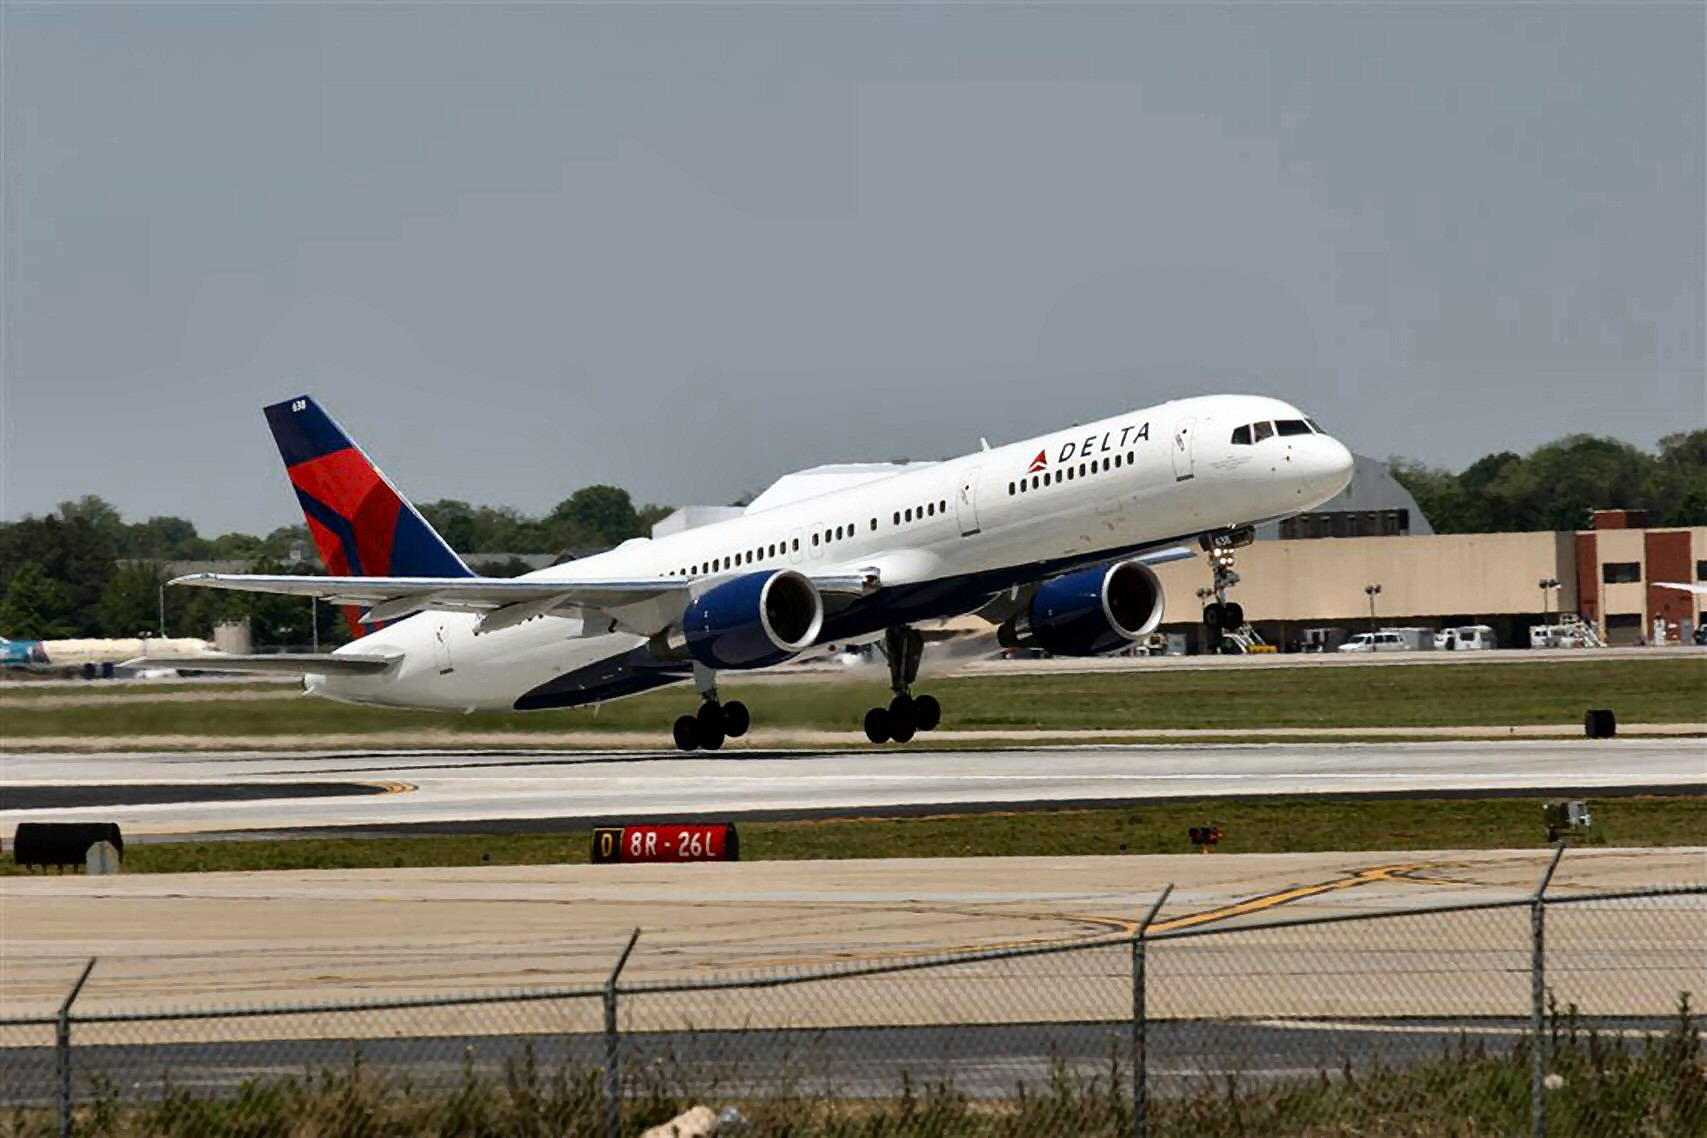 A Boeing 757 similar to the one that was diverted Monday evening to southeastern Washington. Credit: Delta